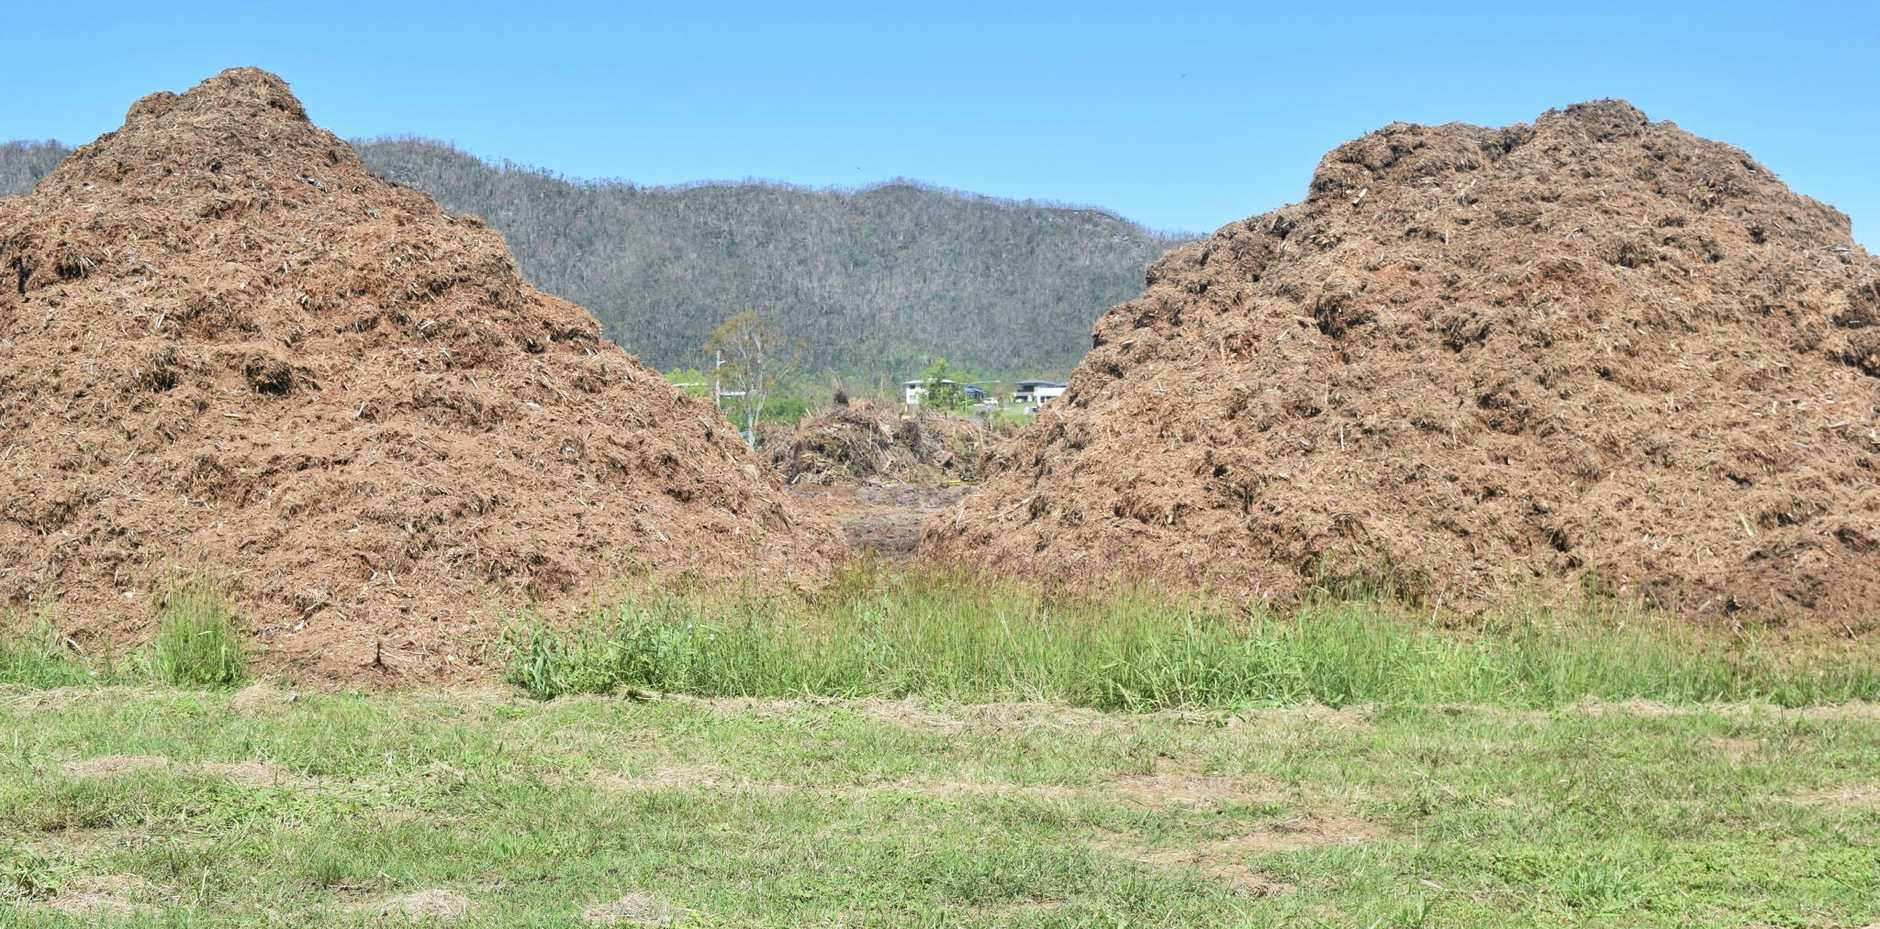 Free mulch is now available across the Whitsundays, including the site at Gailbrath Park Road.